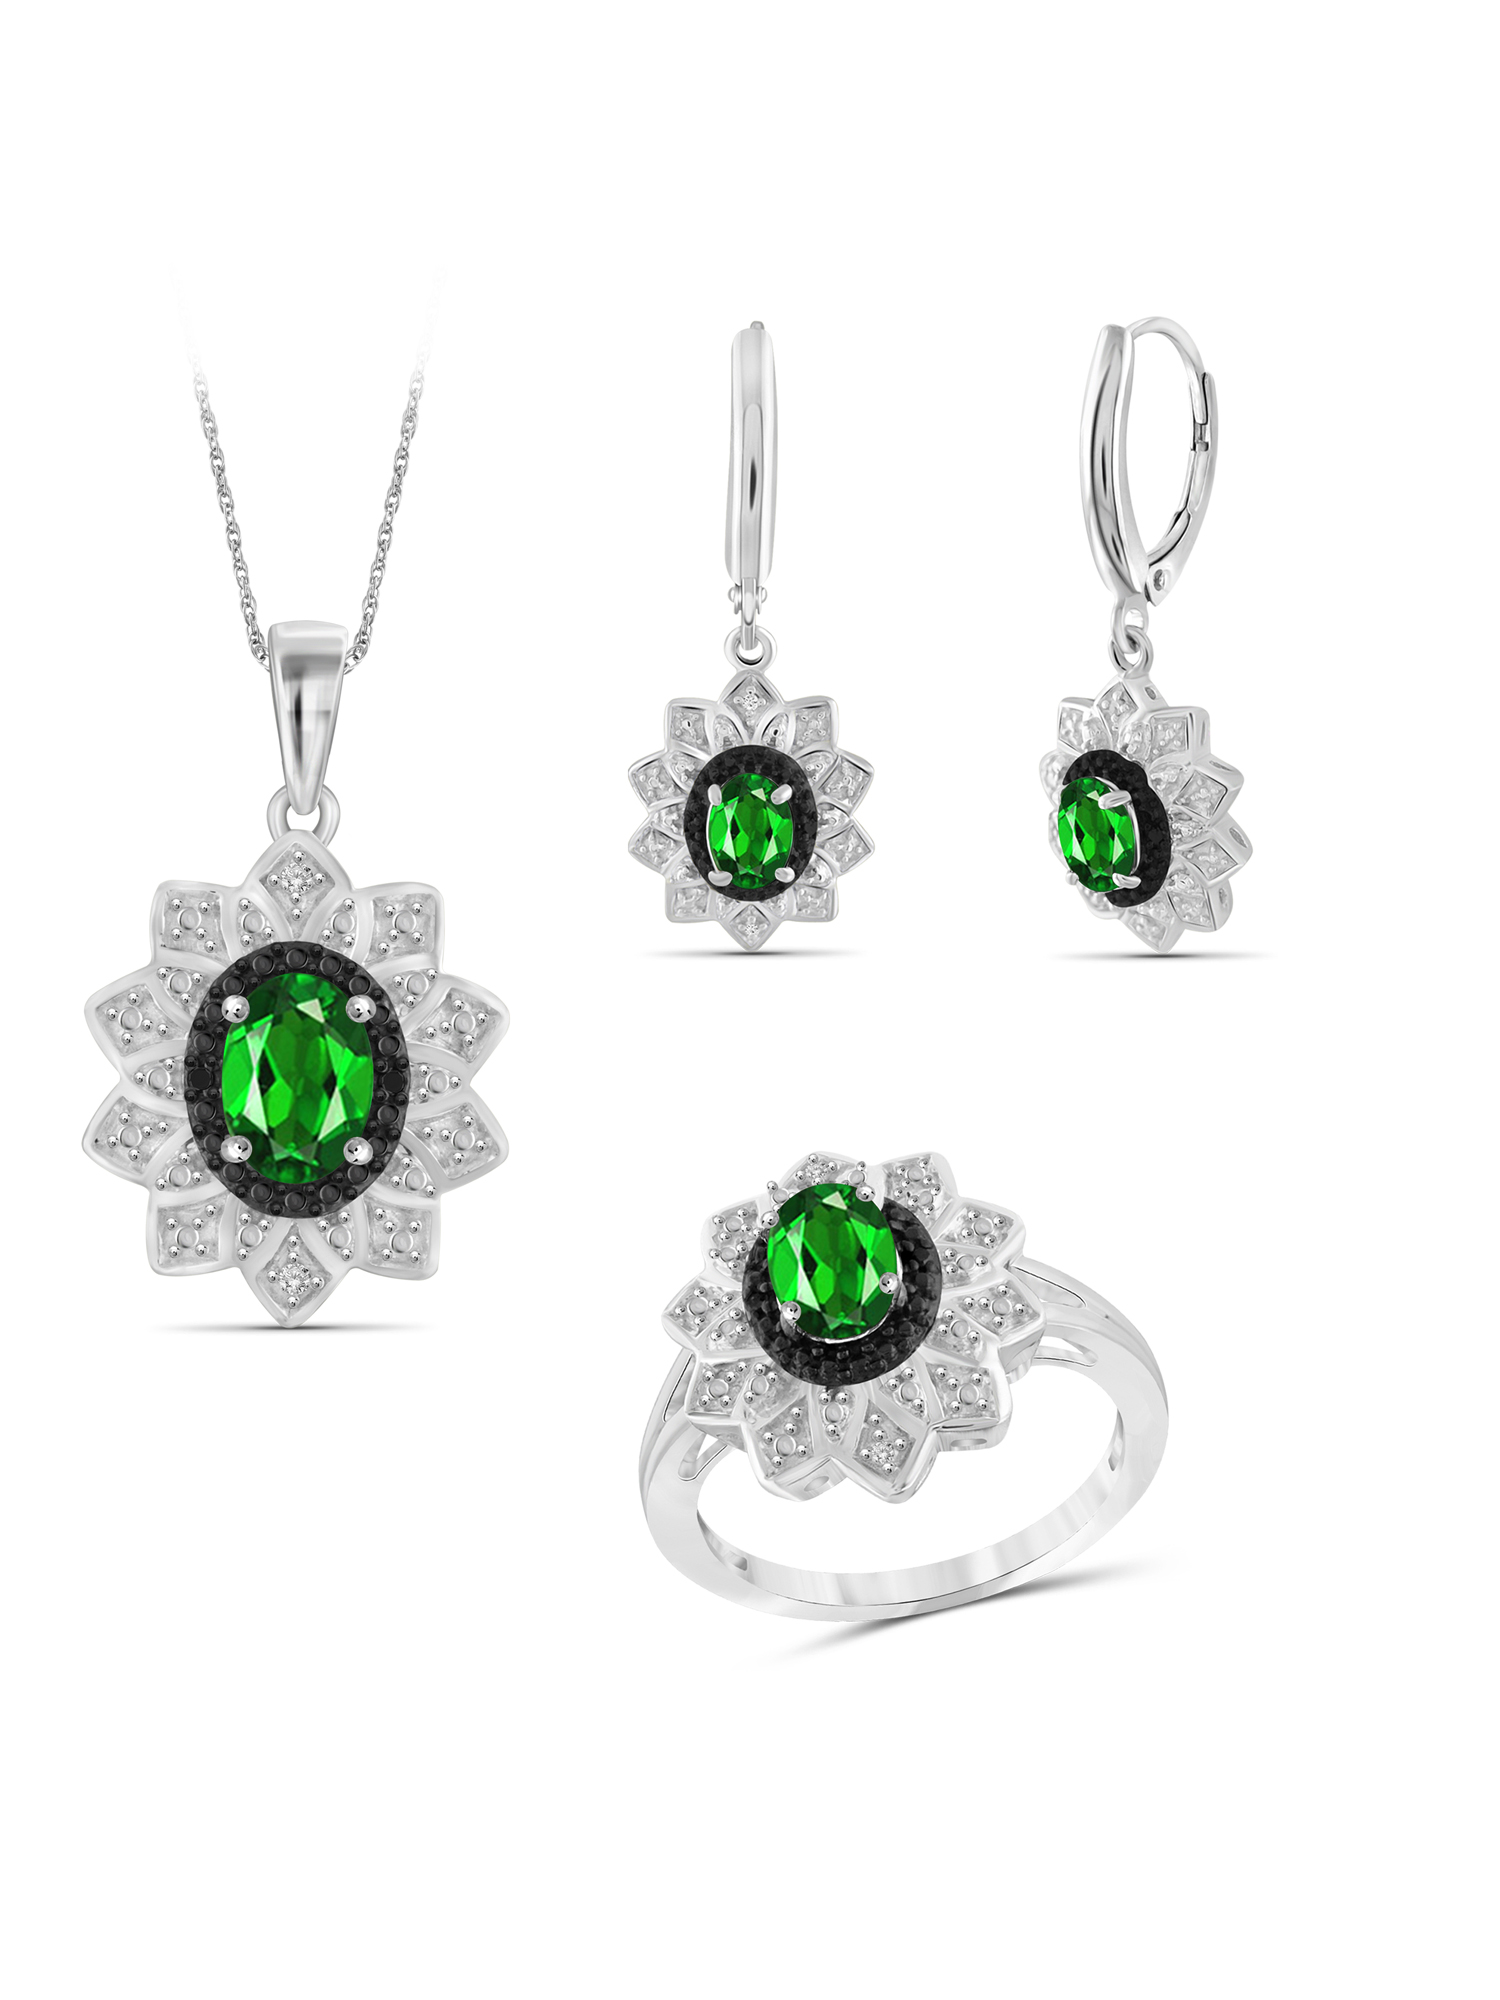 2 3/4 Carat T.G.W. Chrome Diopside And Black & White Diamond Accent Sterling Silver 3-Piece Jewelry set